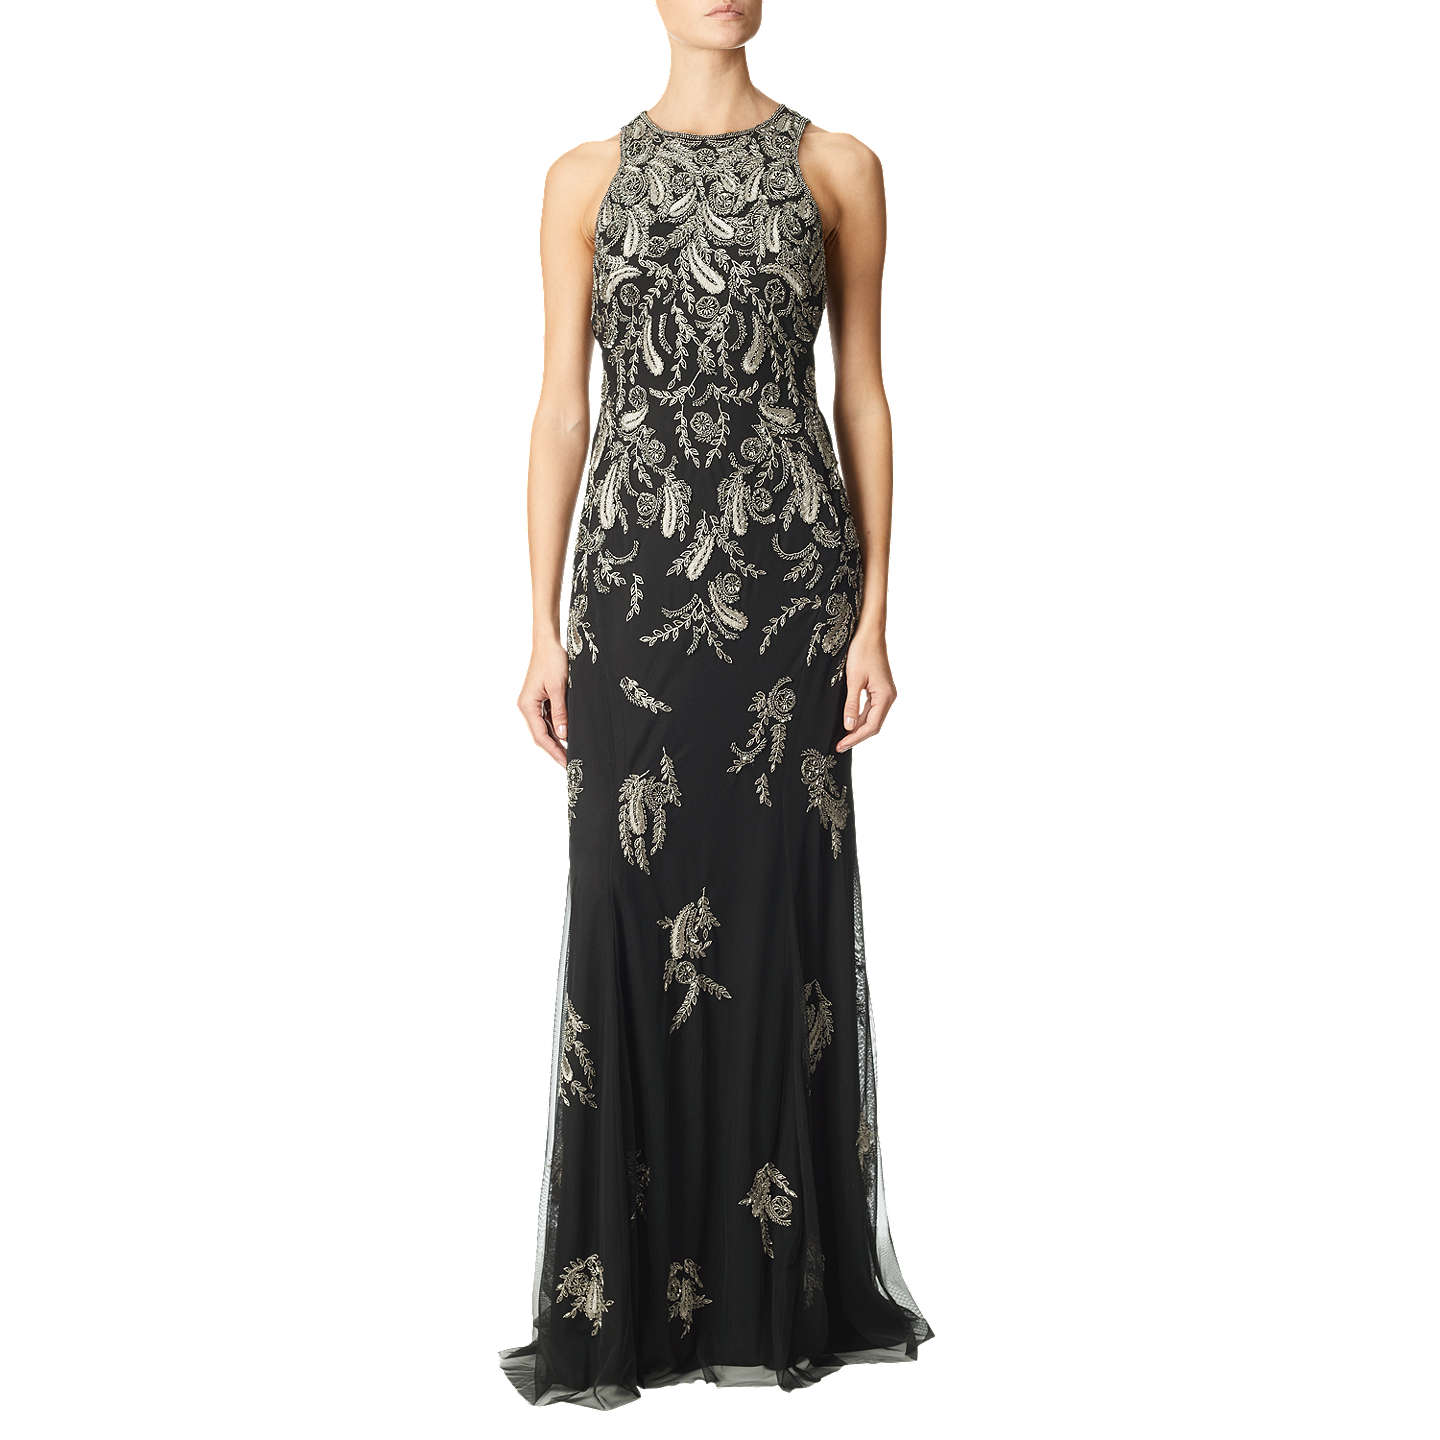 Adrianna Papell Beaded Long Dress, Black/Mercury at John Lewis